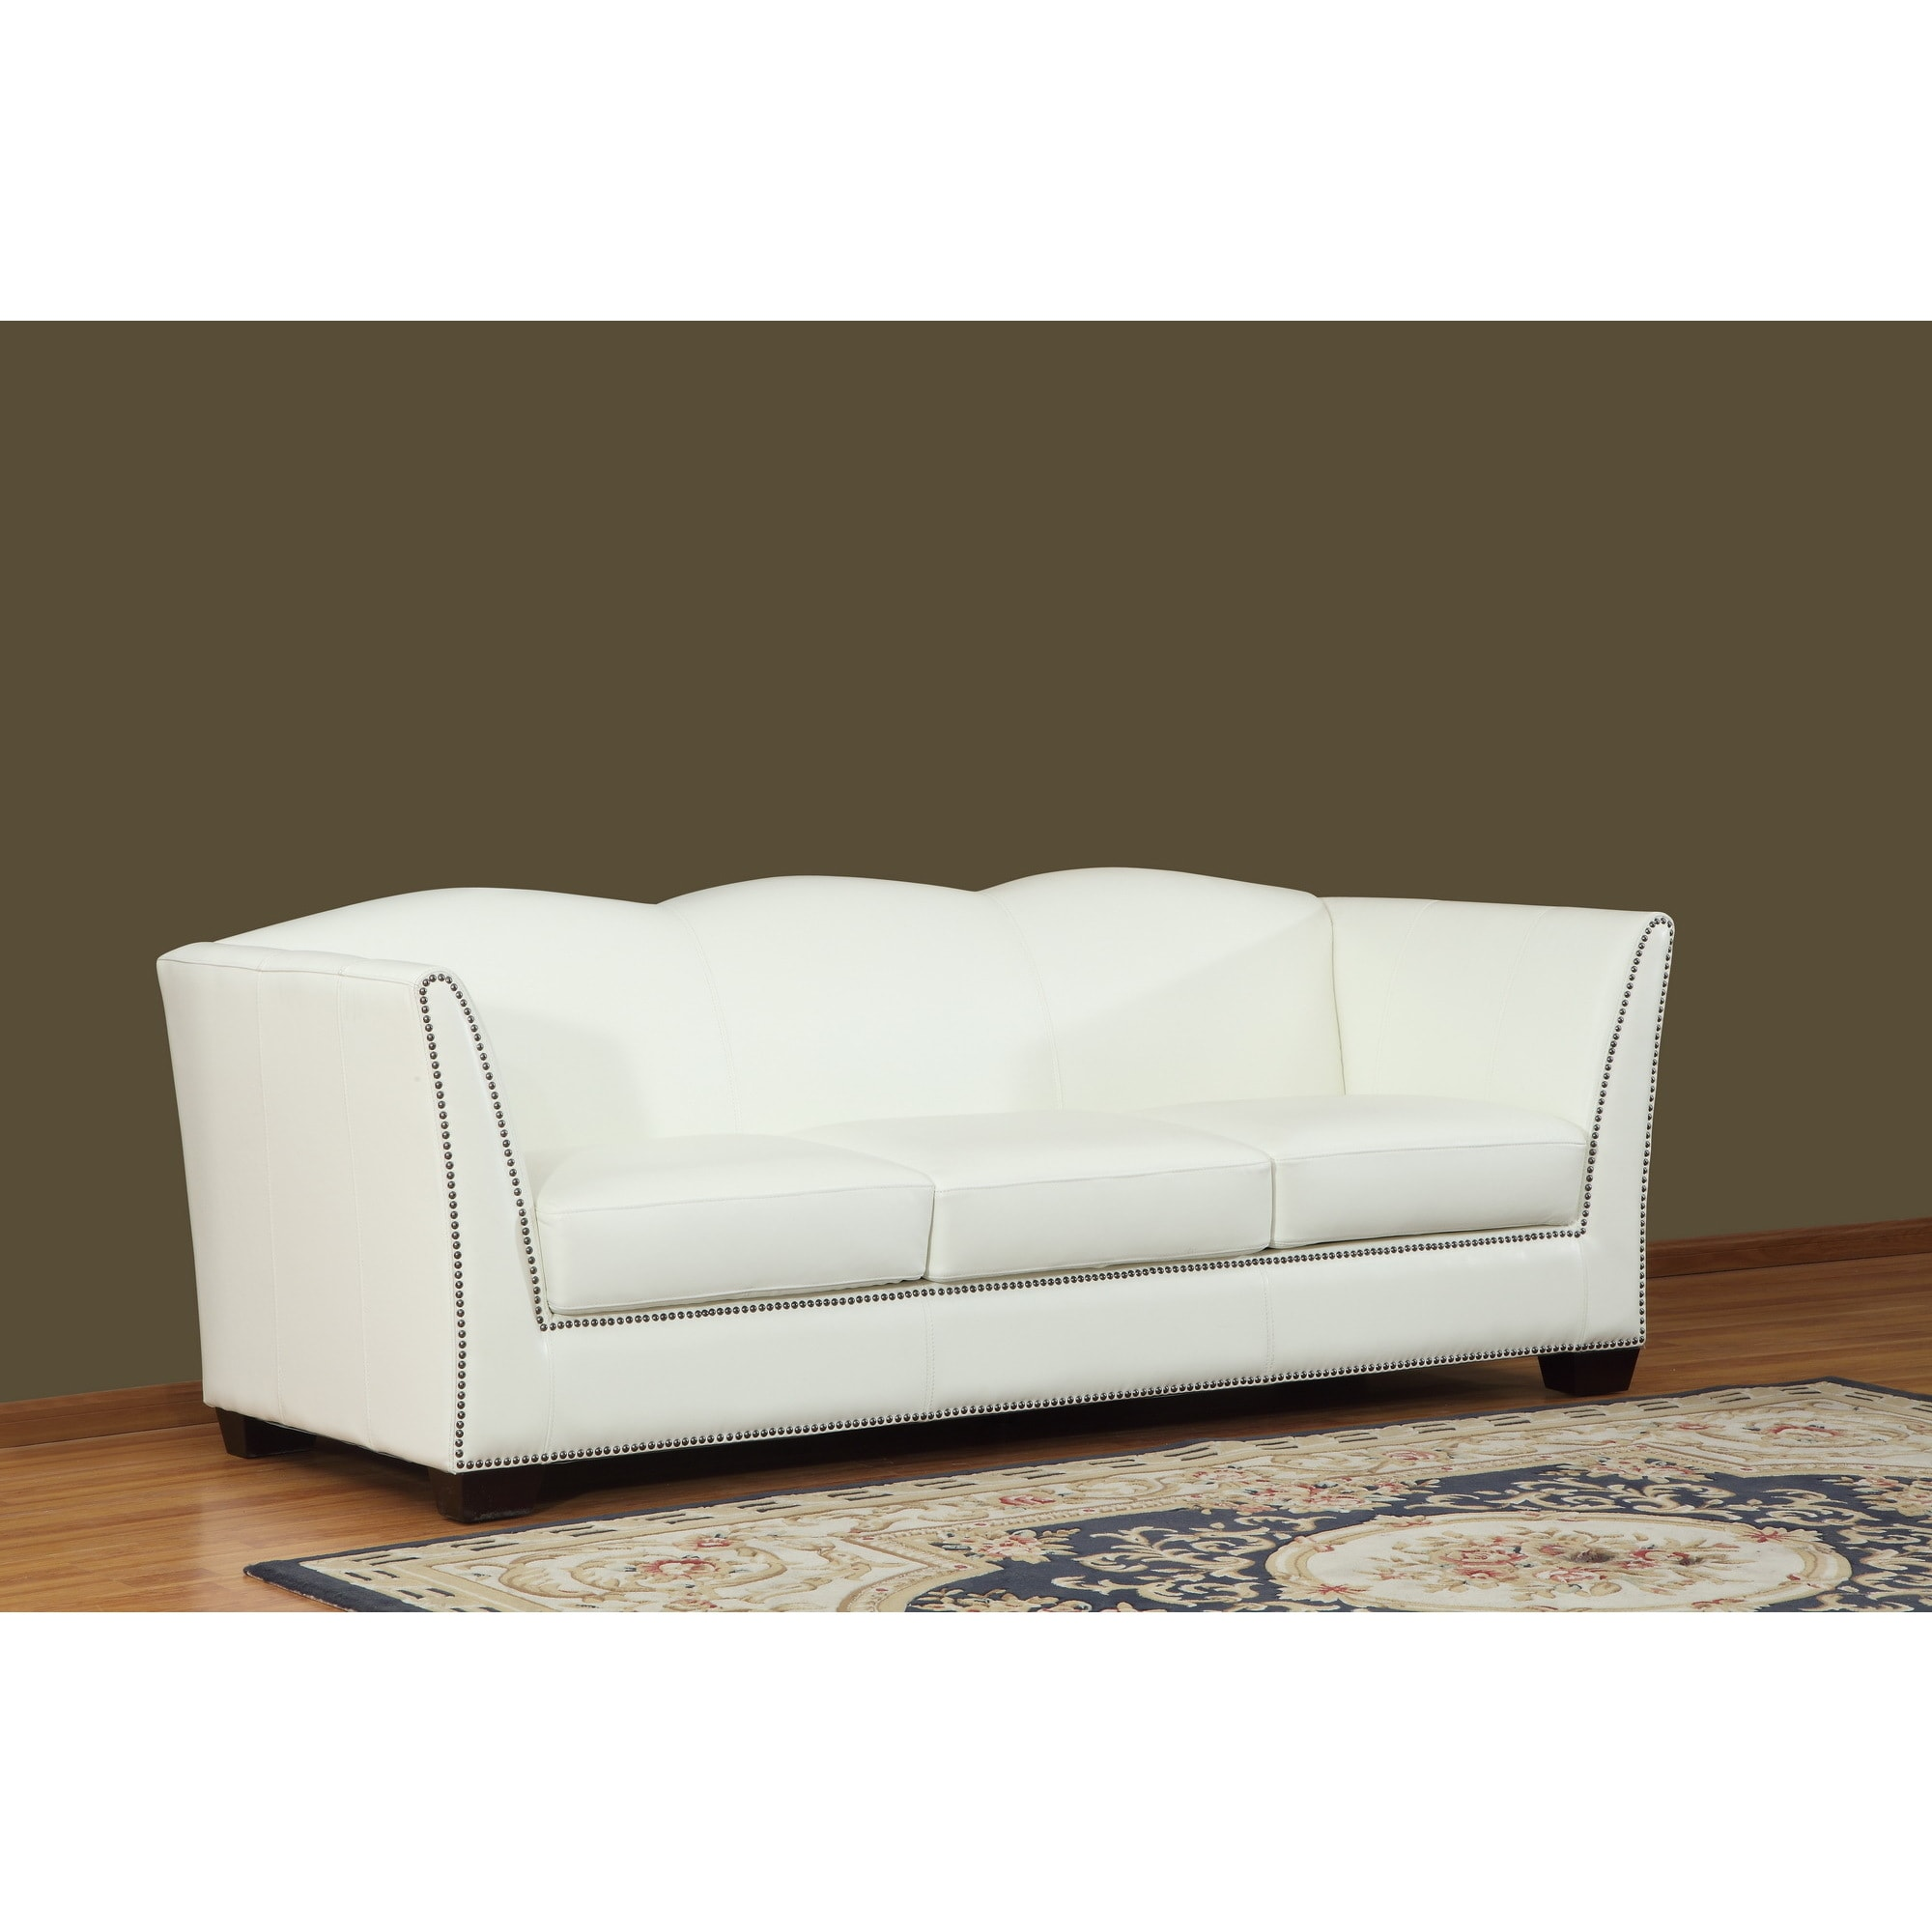 Lazzaro Leather Marilyn Leather Sofa (White Leather with ...